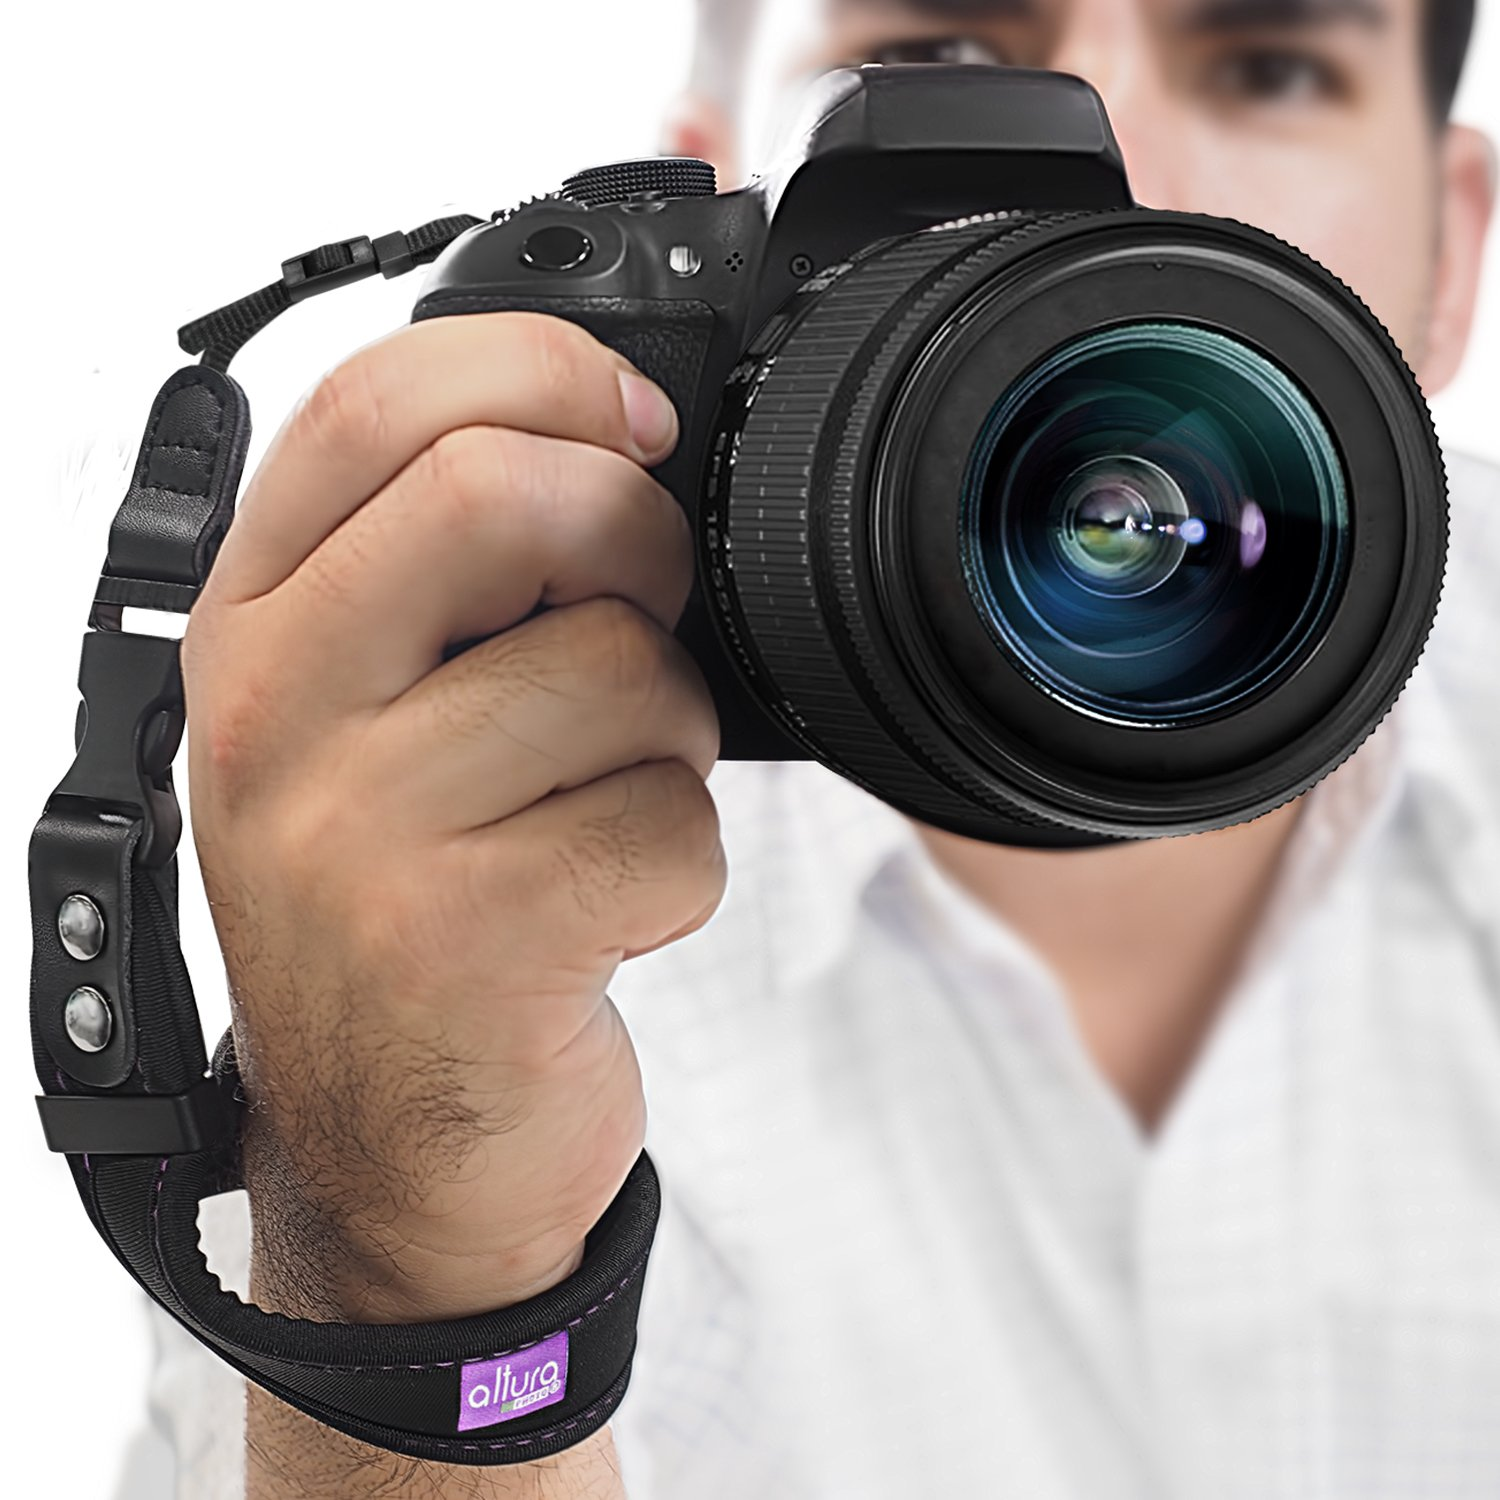 gifts for photographers under 10 dollars safety wrist strap